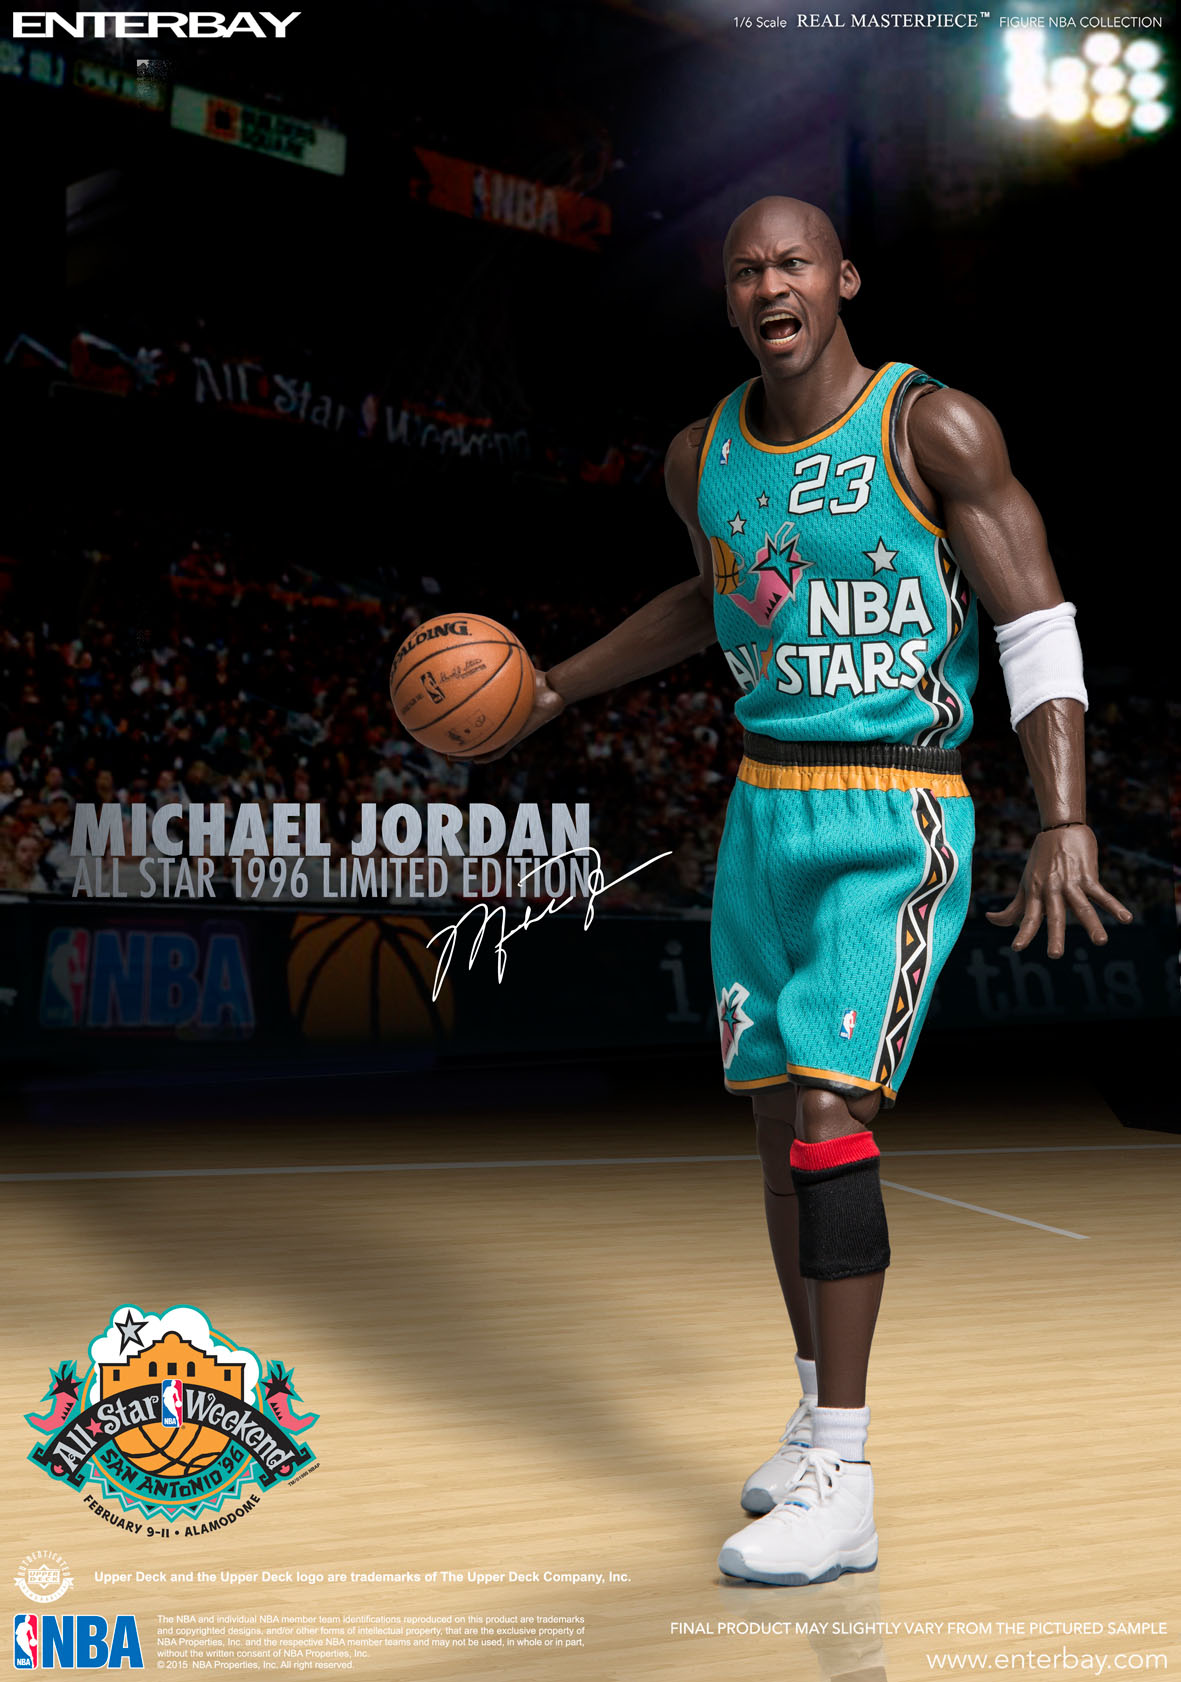 f71f6e10564d63 NBA COLLECTION  MICHAEL JORDAN ( ALL STAR 1996 ) REAL MASTERPIECE 1 6  Action Figure ...